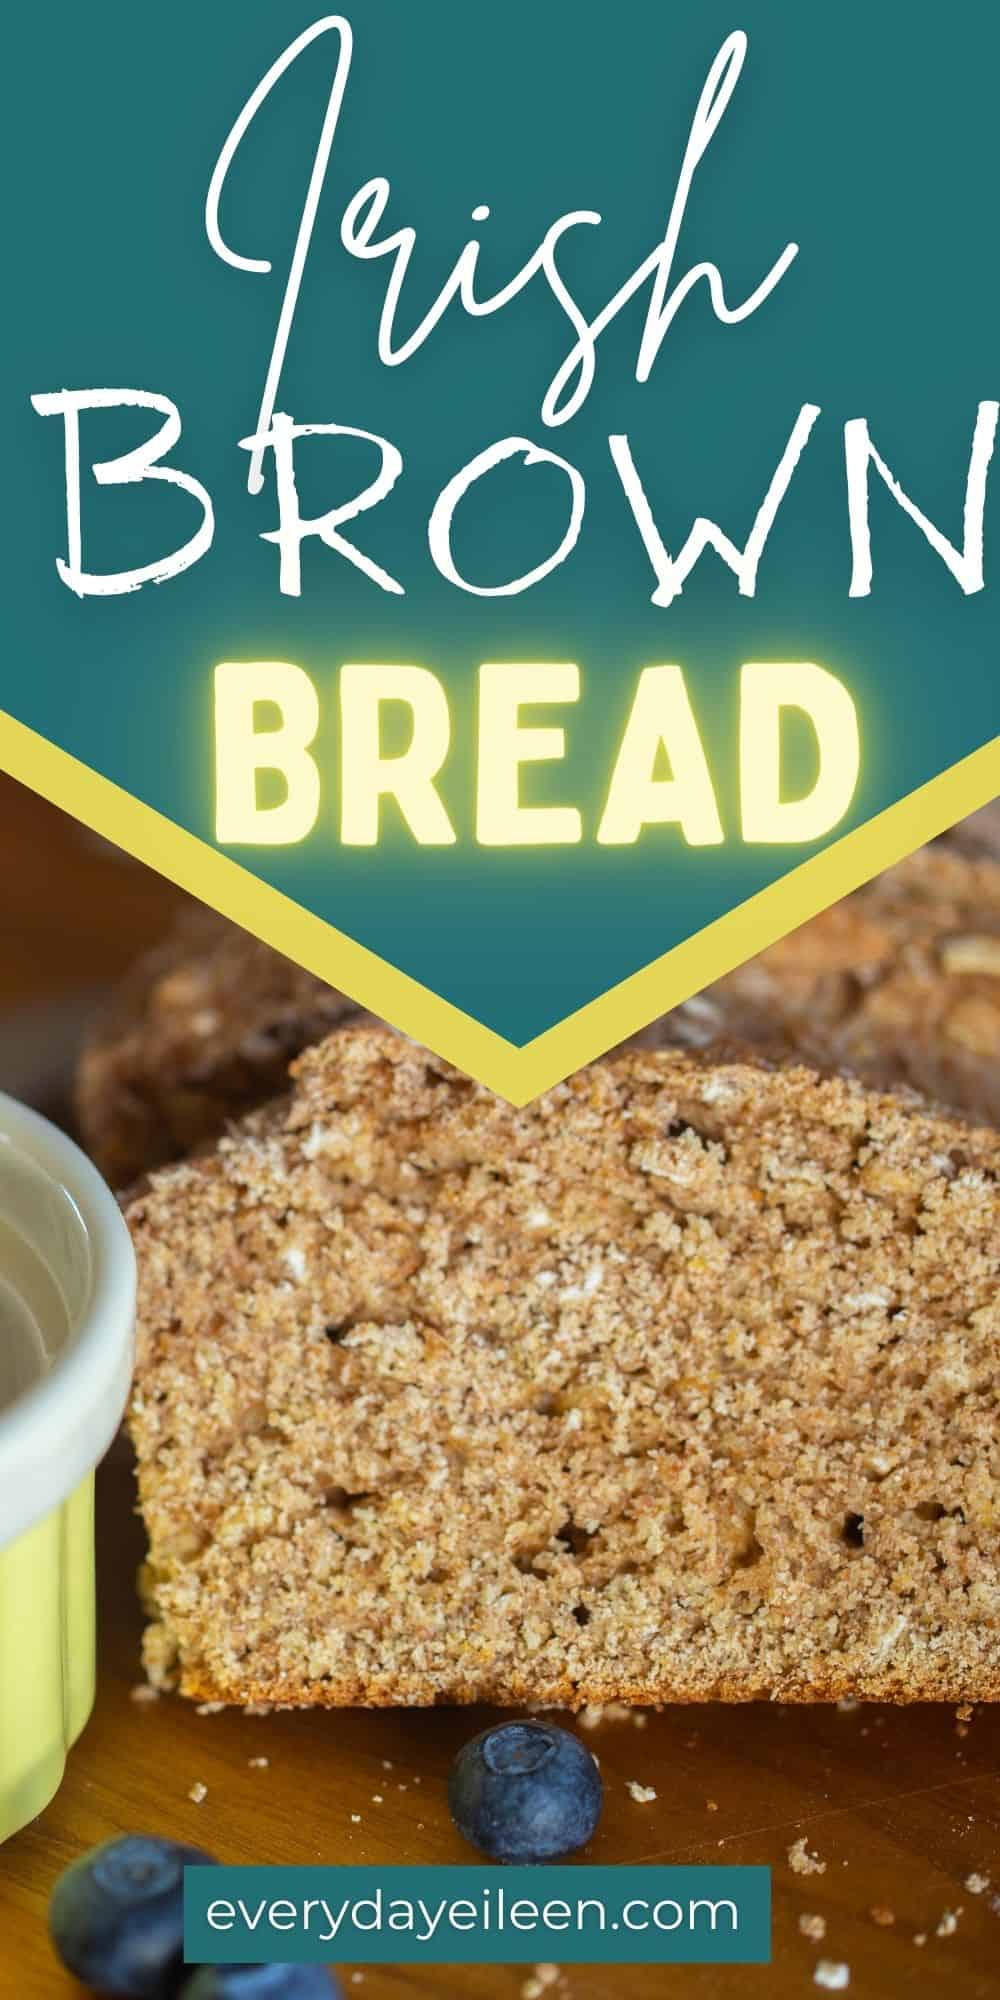 This Homemade Brown Bread Recipe is a traditional Irish bread recipe that is just delicious. The recipe has won many blue ribbons for its great taste. A simple recipe that can be made by everyone. Made with whole wheat, rolled oats, and buttermilk.  via @/everydayeileen/